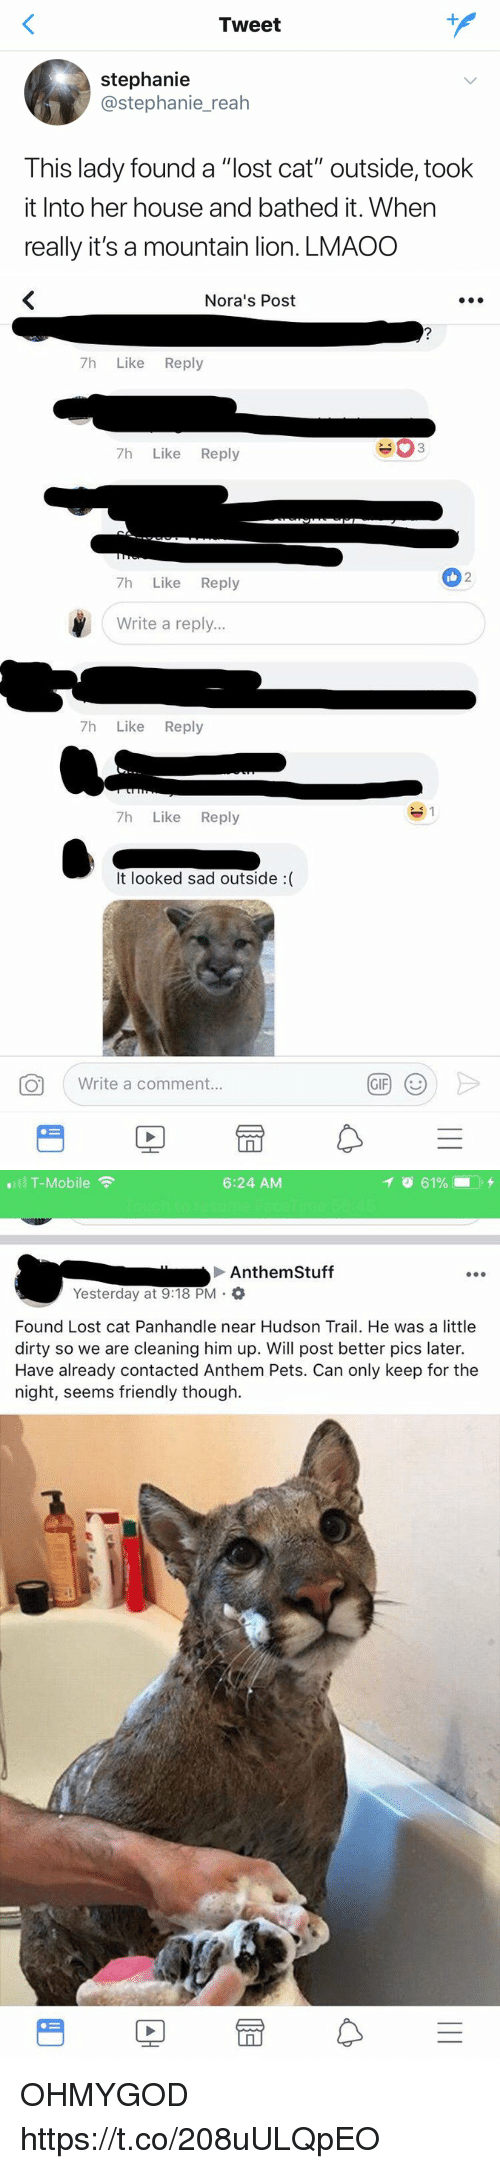 """Gif, T-Mobile, and Lost: Tweet  stephanie  @stephanie_reah  This lady found a """"lost cat"""" outside, took  it Into her house and bathed it. When  really it's a mountain lion. LMAOO   Nora's Post  7h Like Reply  7h Like Reply  2  7h Like Reply  Write a reply...  7h Like Reply  7h Like Reply  It looked sad outside :(  Write a comment.  GIF   .111 T-Mobile令  6:24 AM  イ  61%- . +  Anthem Stuff  Yesterday at 9:18 PM .  Found Lost cat Panhandle near Hudson Trail. He was a little  dirty so we are cleaning him up. Will post better pics later.  Have already contacted Anthem Pets. Can only keep for the  night, seems friendly though.  PE OHMYGOD https://t.co/208uULQpEO"""